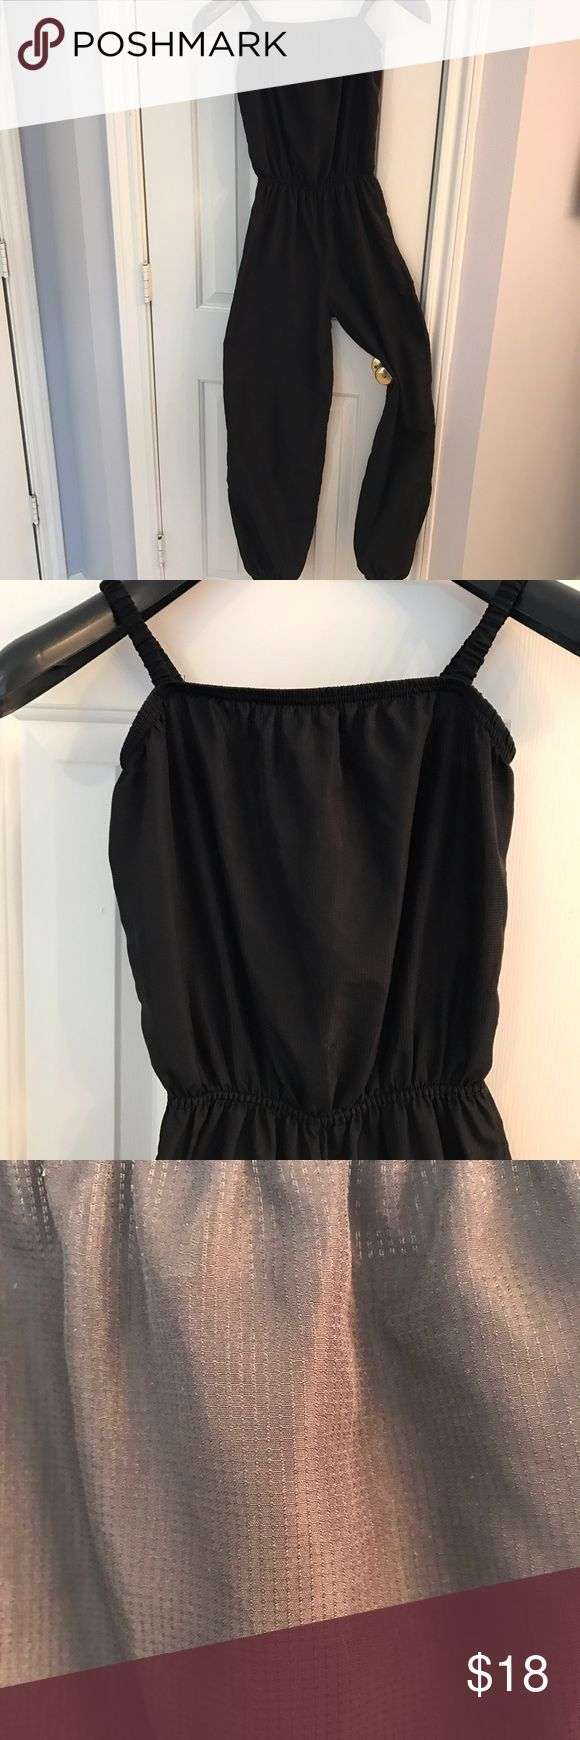 Body Wrappers Jumpsuit Ballet warm up Body Wrappers women's 12-14 black warm up Jumpsuit. Elastic at ankles and waist. Gently used, no flaws. 100% nylon. Body Wrappers Other